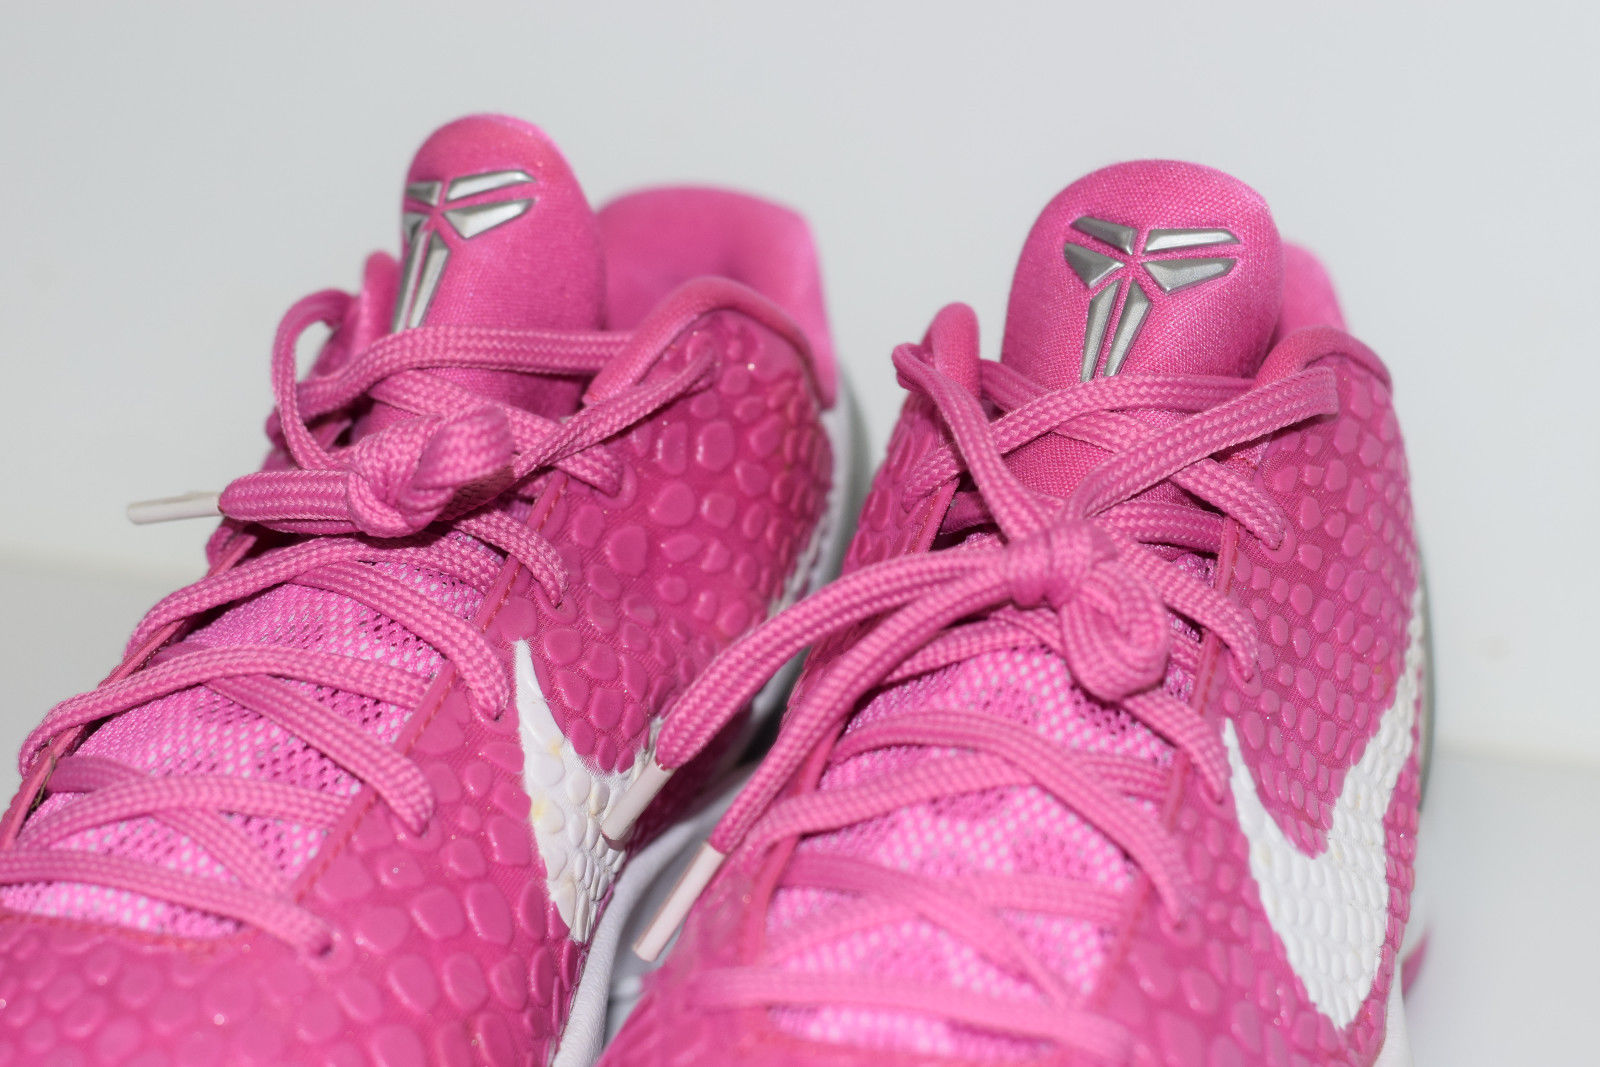 competitive price 6f171 c435a ... switzerland size 10 new 2011 nike kobe 6 think pink breast cancer kay  yow thumbnail 64149